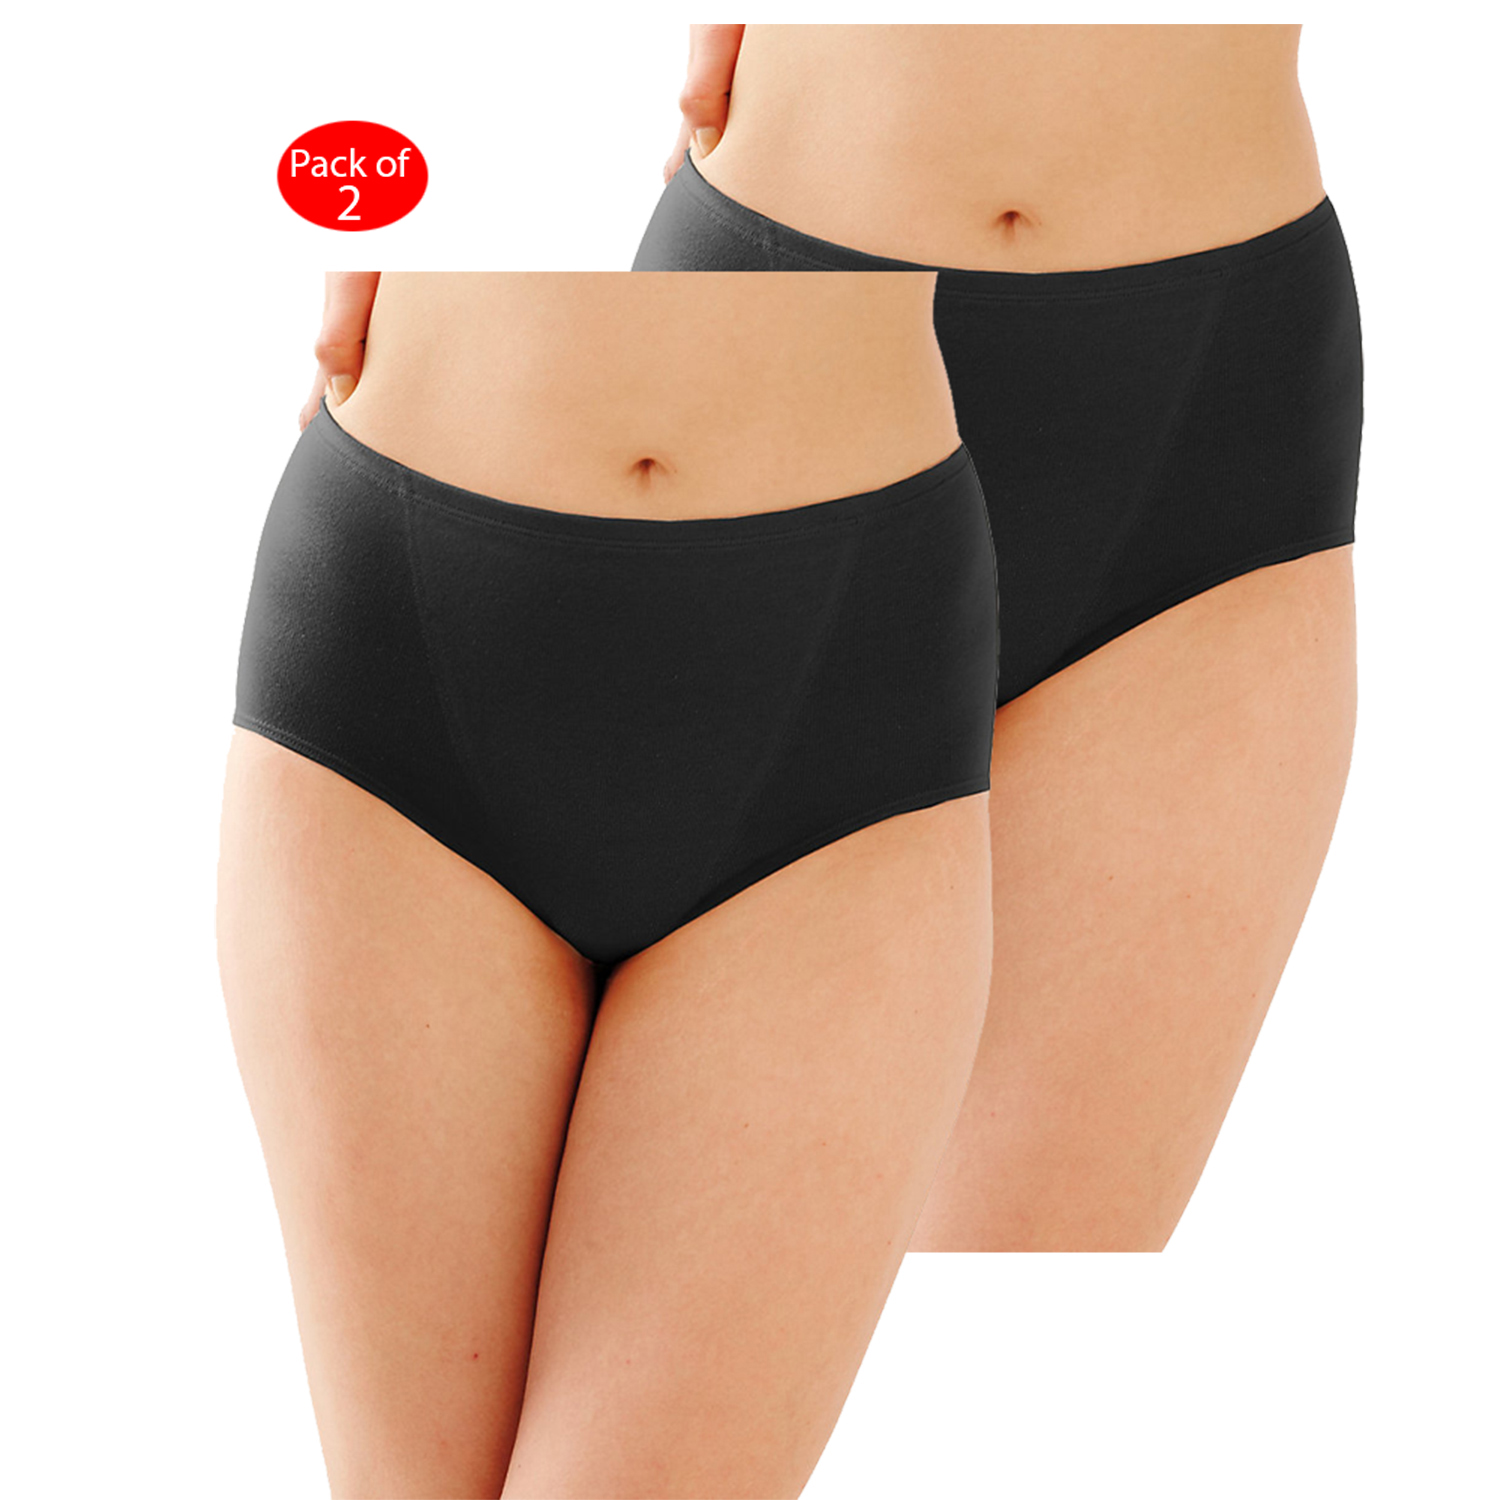 Bali Cool Comfort Cottony Shaping Brief Light Control 2-Pack, Color: Black/Nude, Size: 2XL --- PACK OF 4 (Women's Shapewear - Original Company Packing)